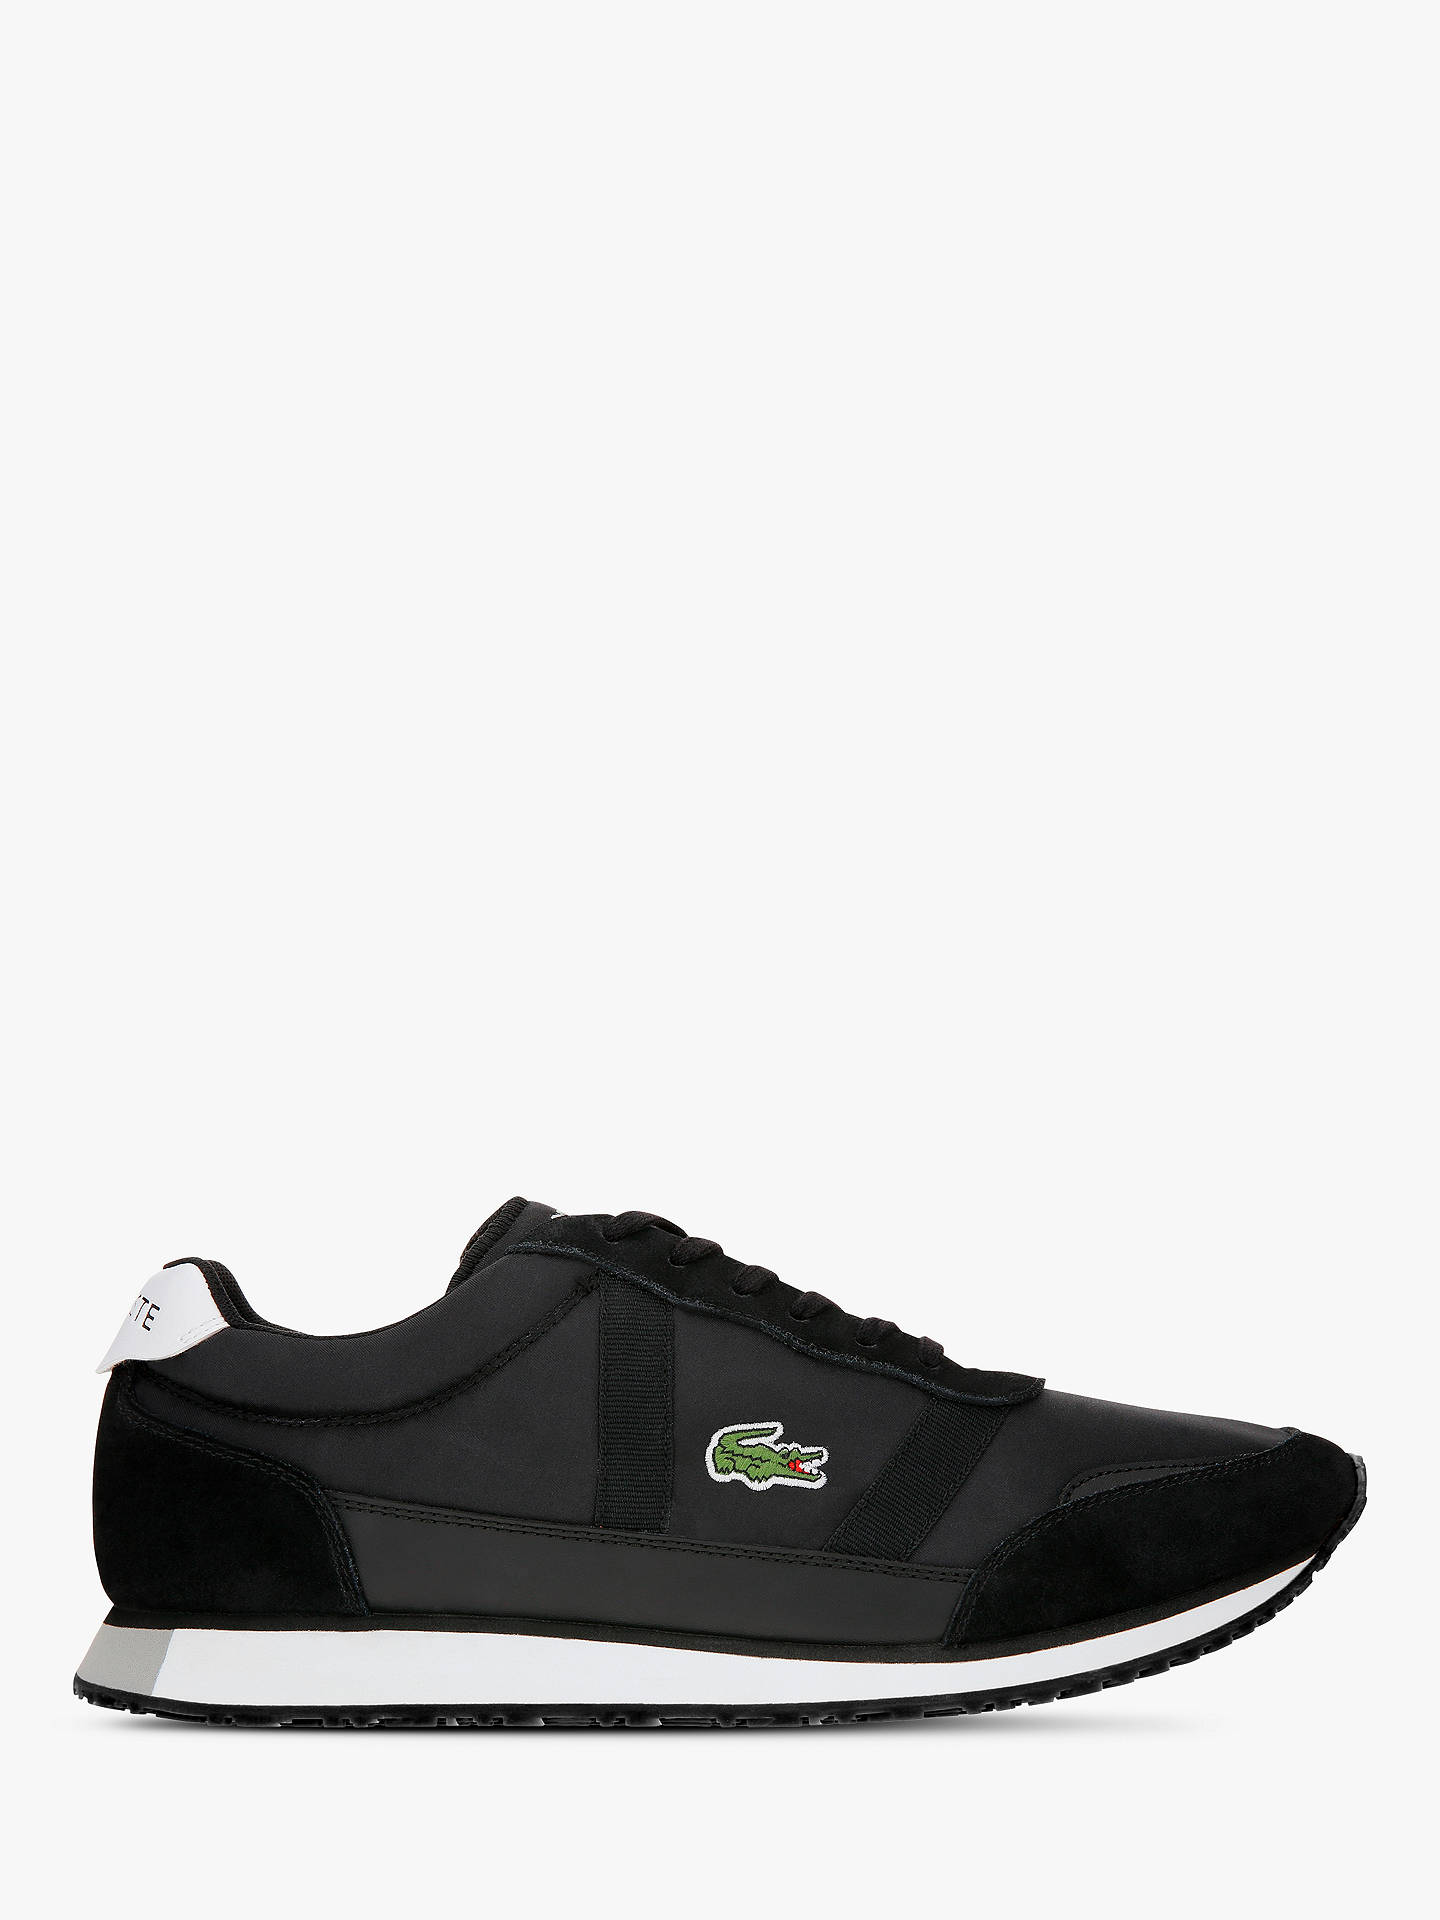 29e751b2f Buy Lacoste Partner Trainers